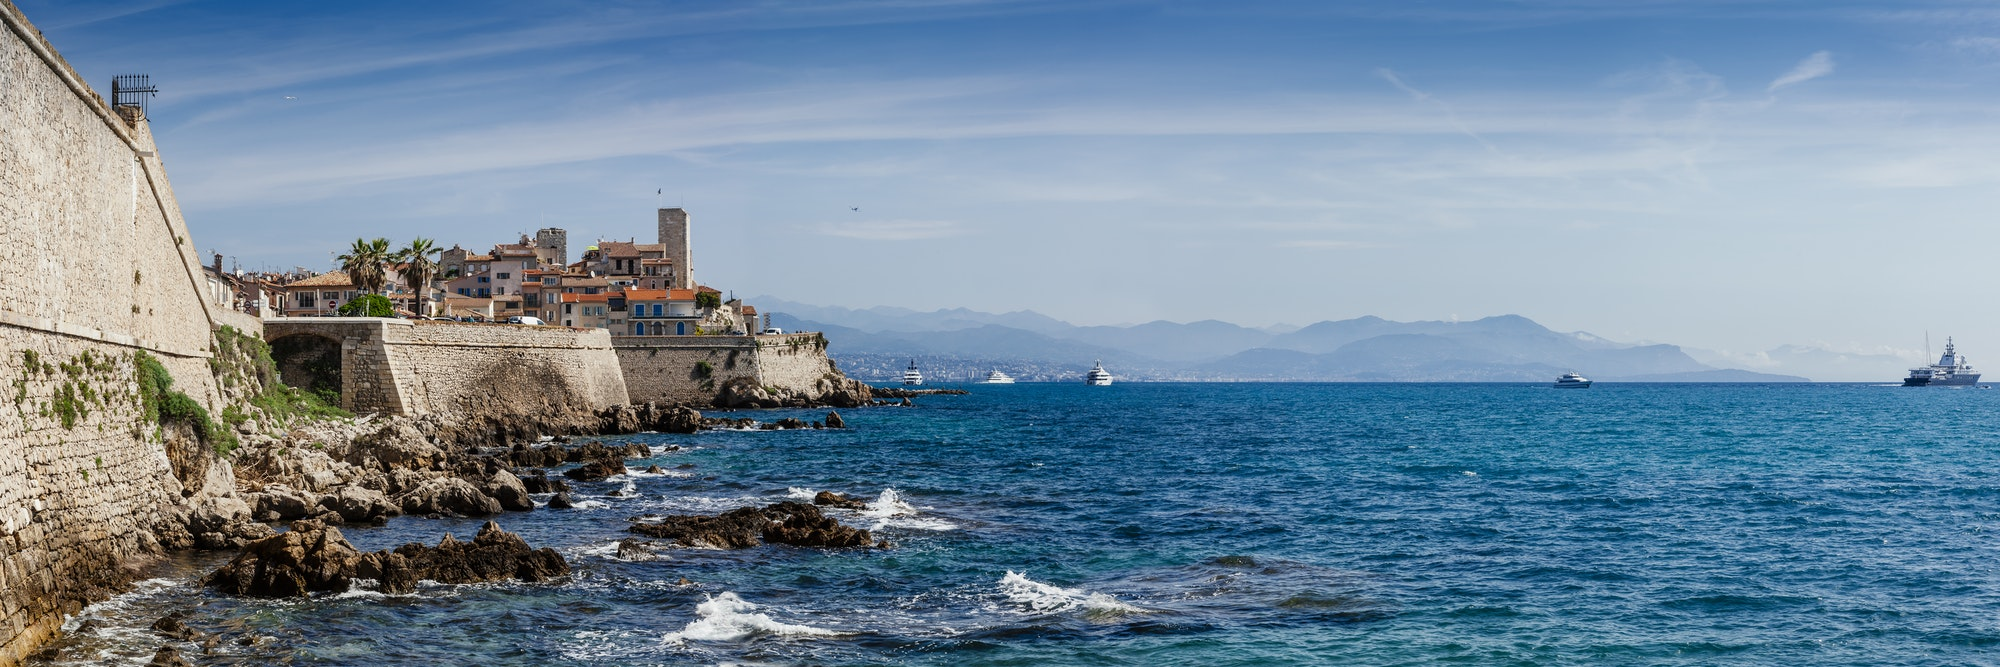 Panoramic of Antibes, France